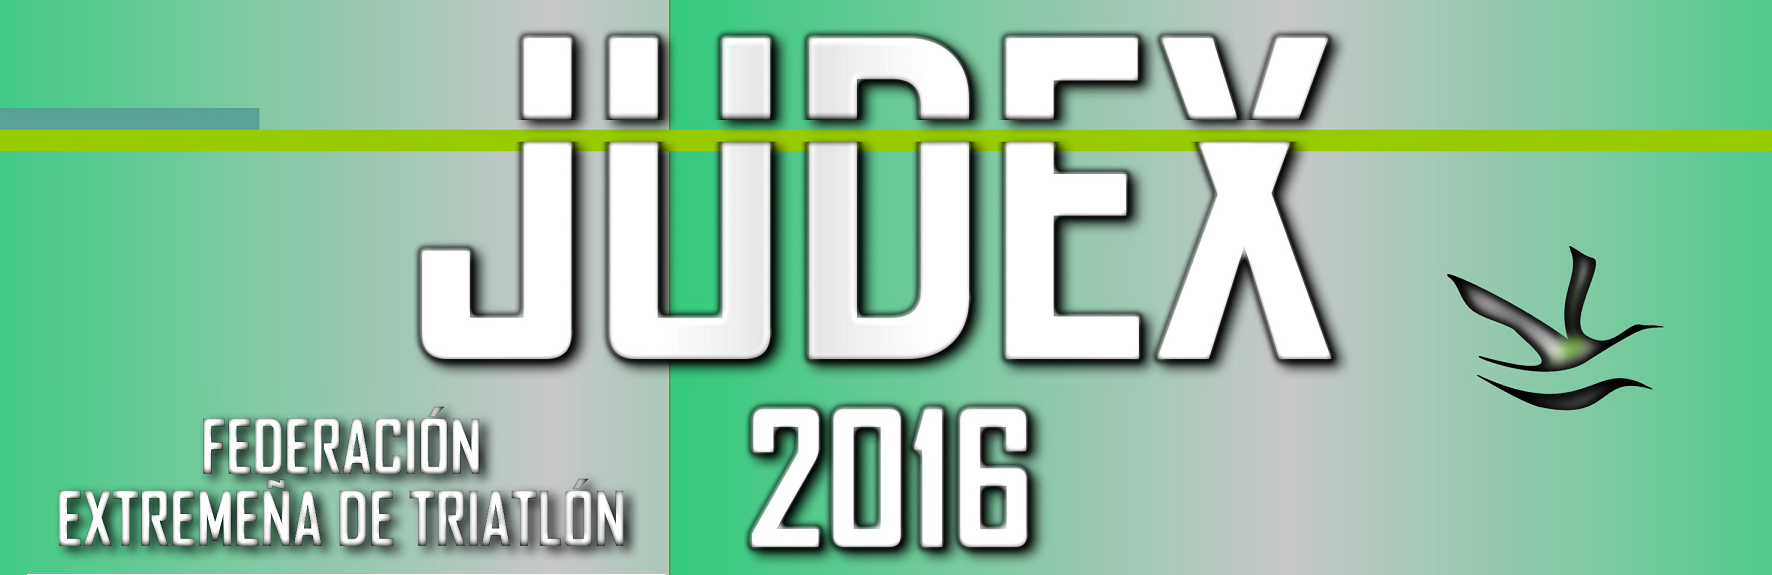 Liga Judex Triatlón 2016